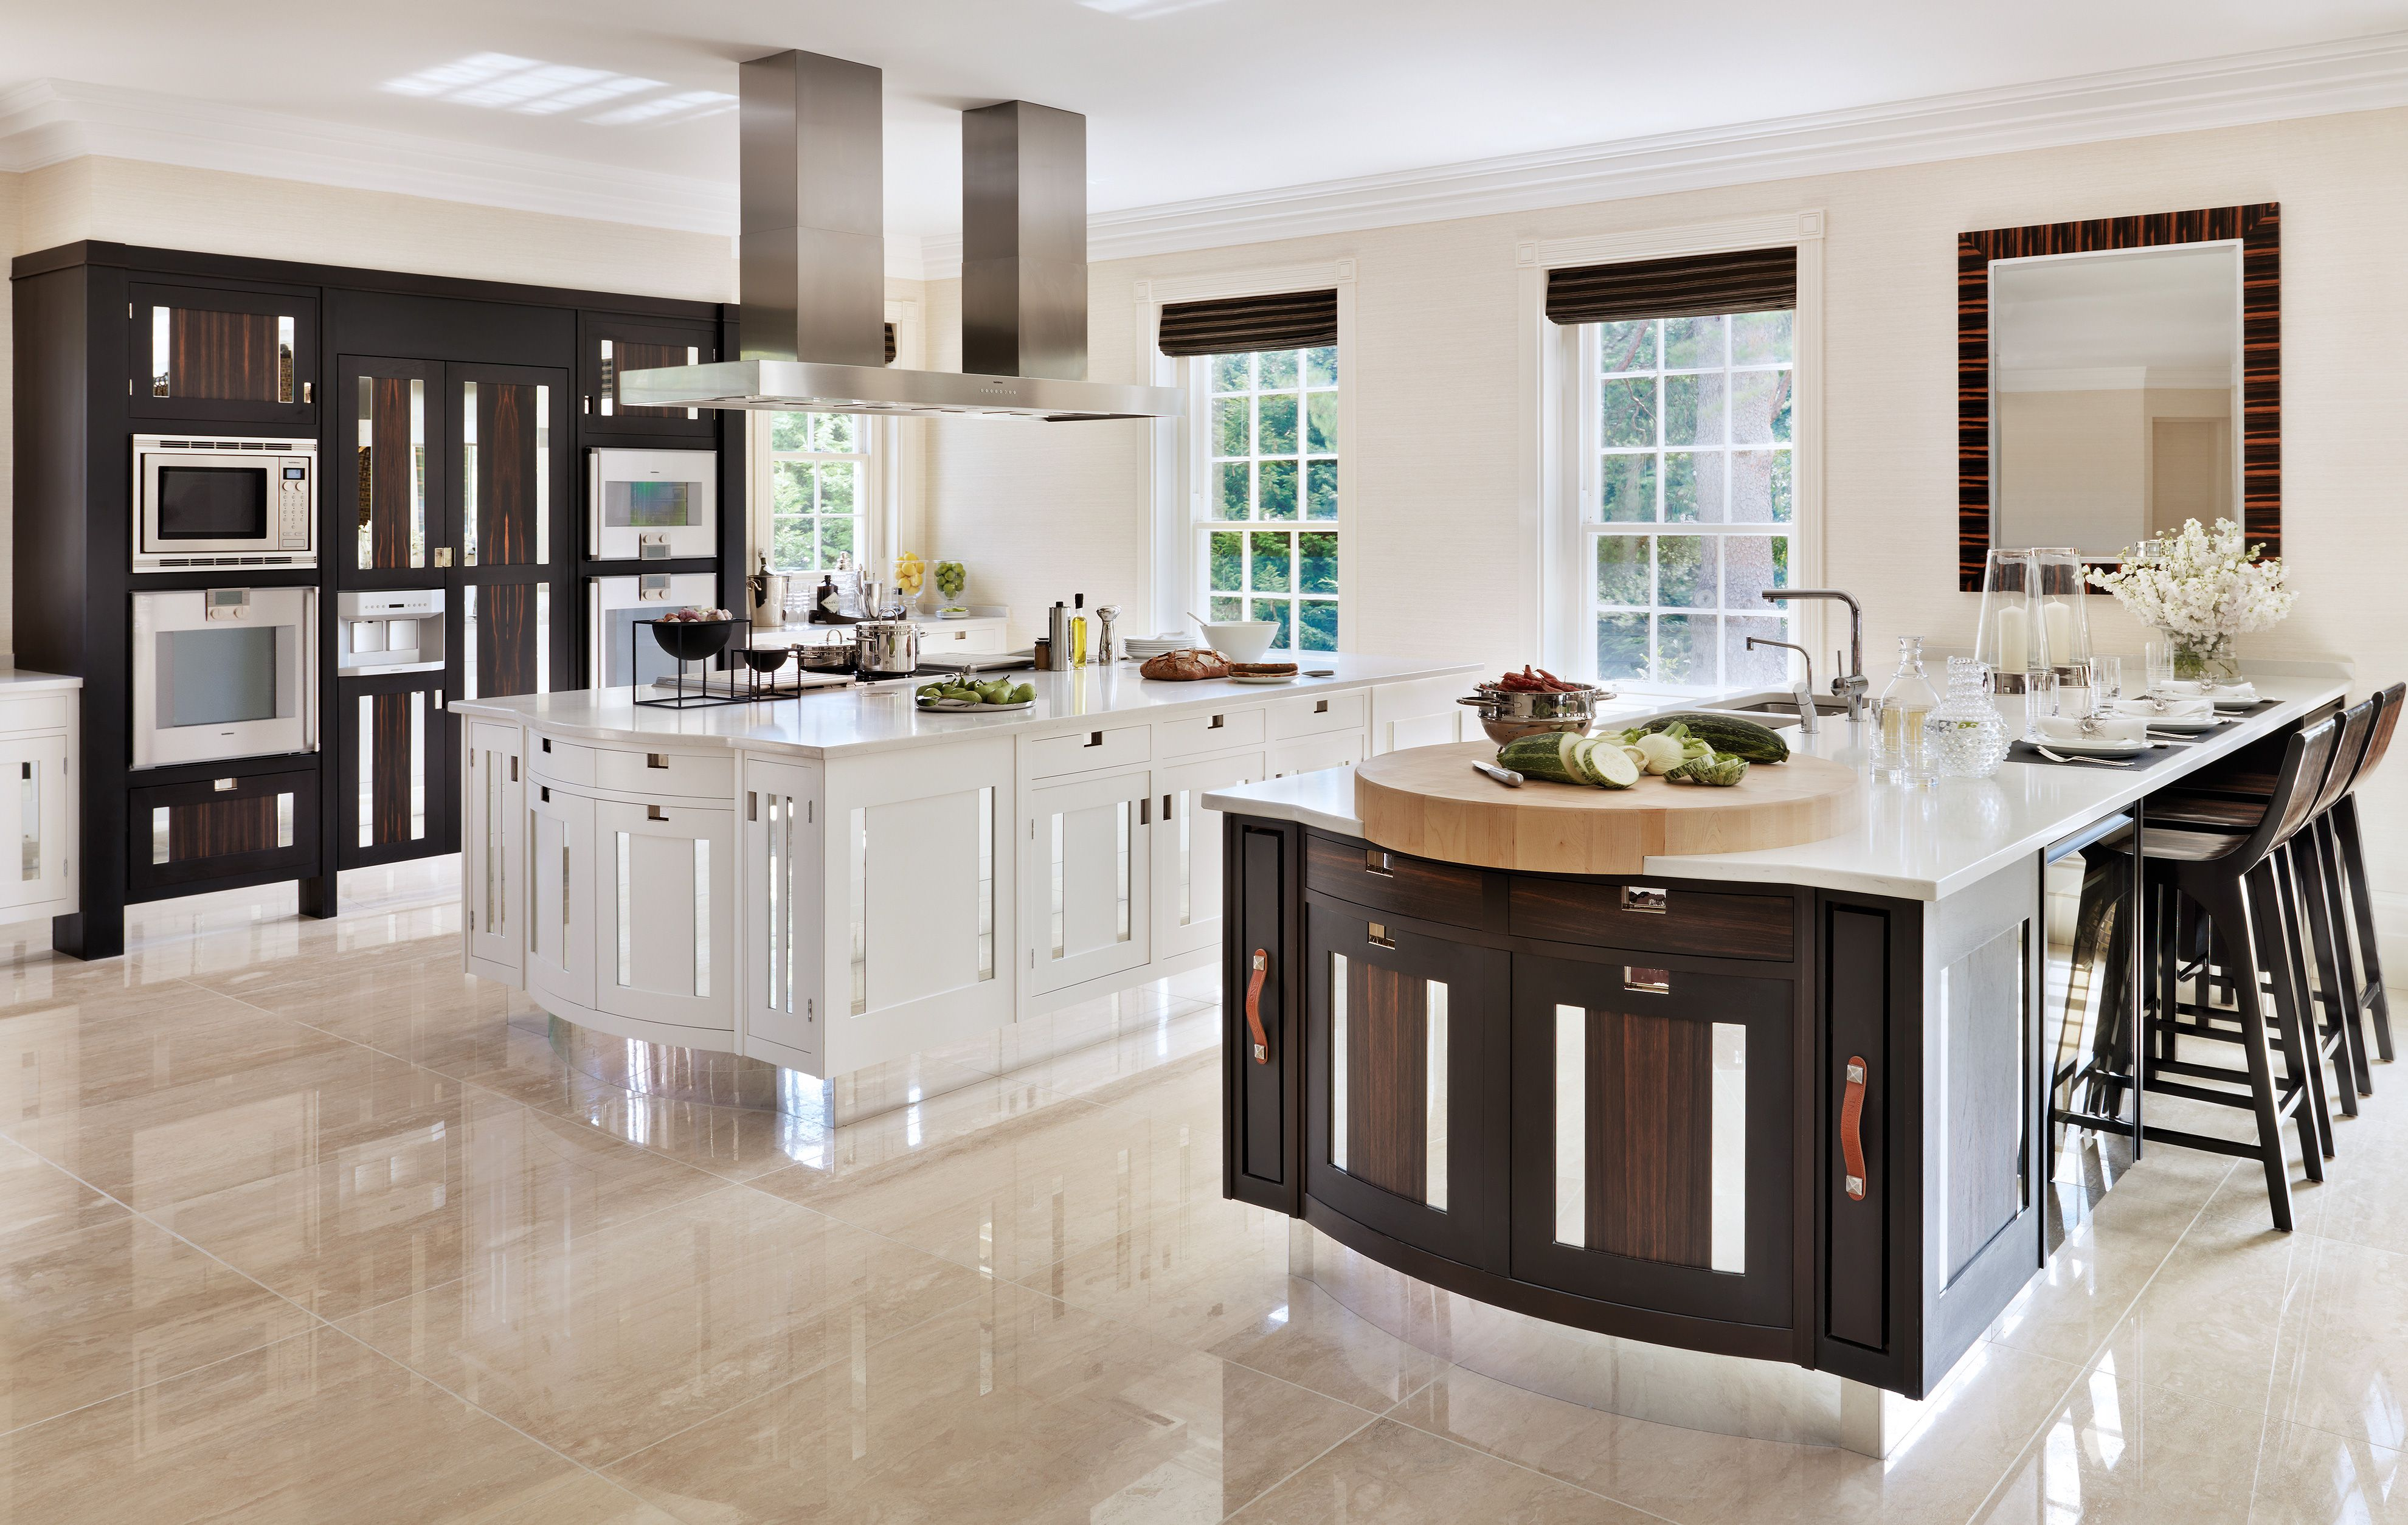 Marvelous kitchen photos about remodel home design styles interior